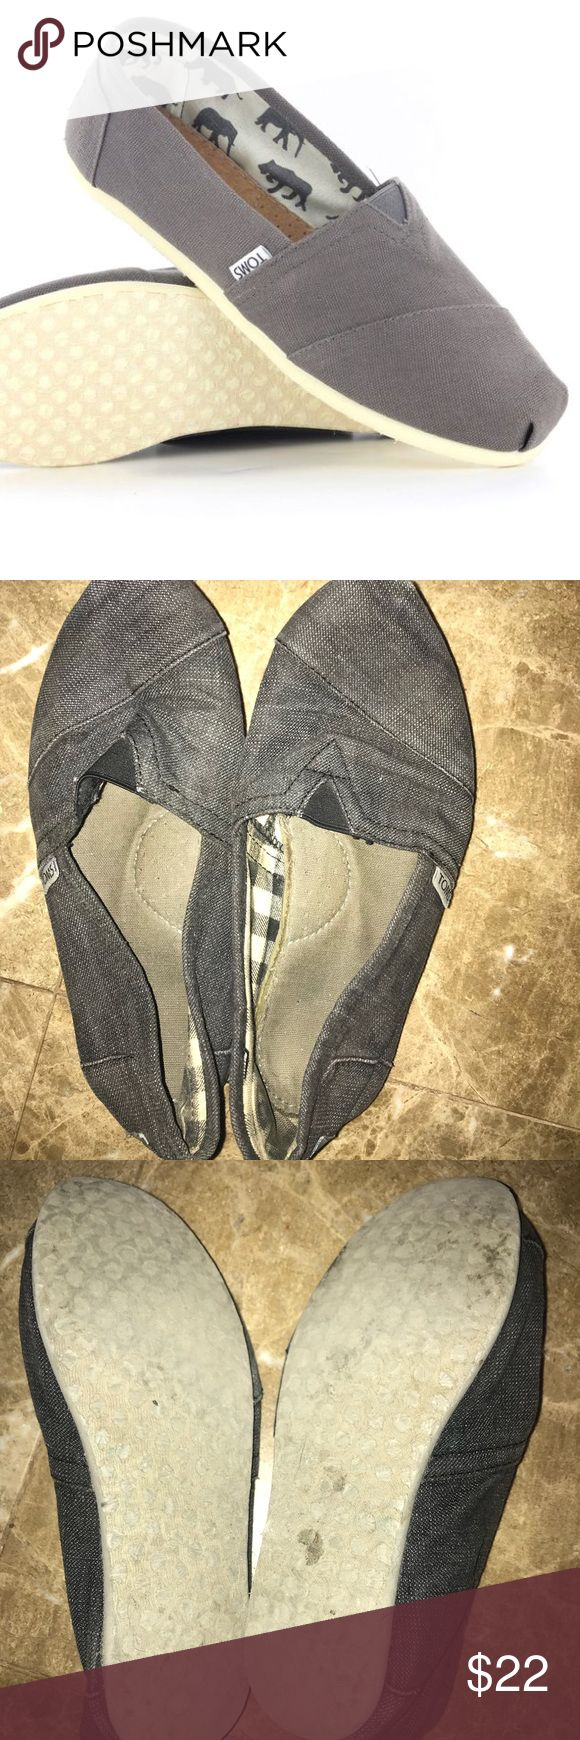 Gray Toms These toms are great for any outfit. I used to love them but I don't wear them anymore. They are a bit dirty since I did love them but they are easy to wash so they're still nice. Toms Shoes